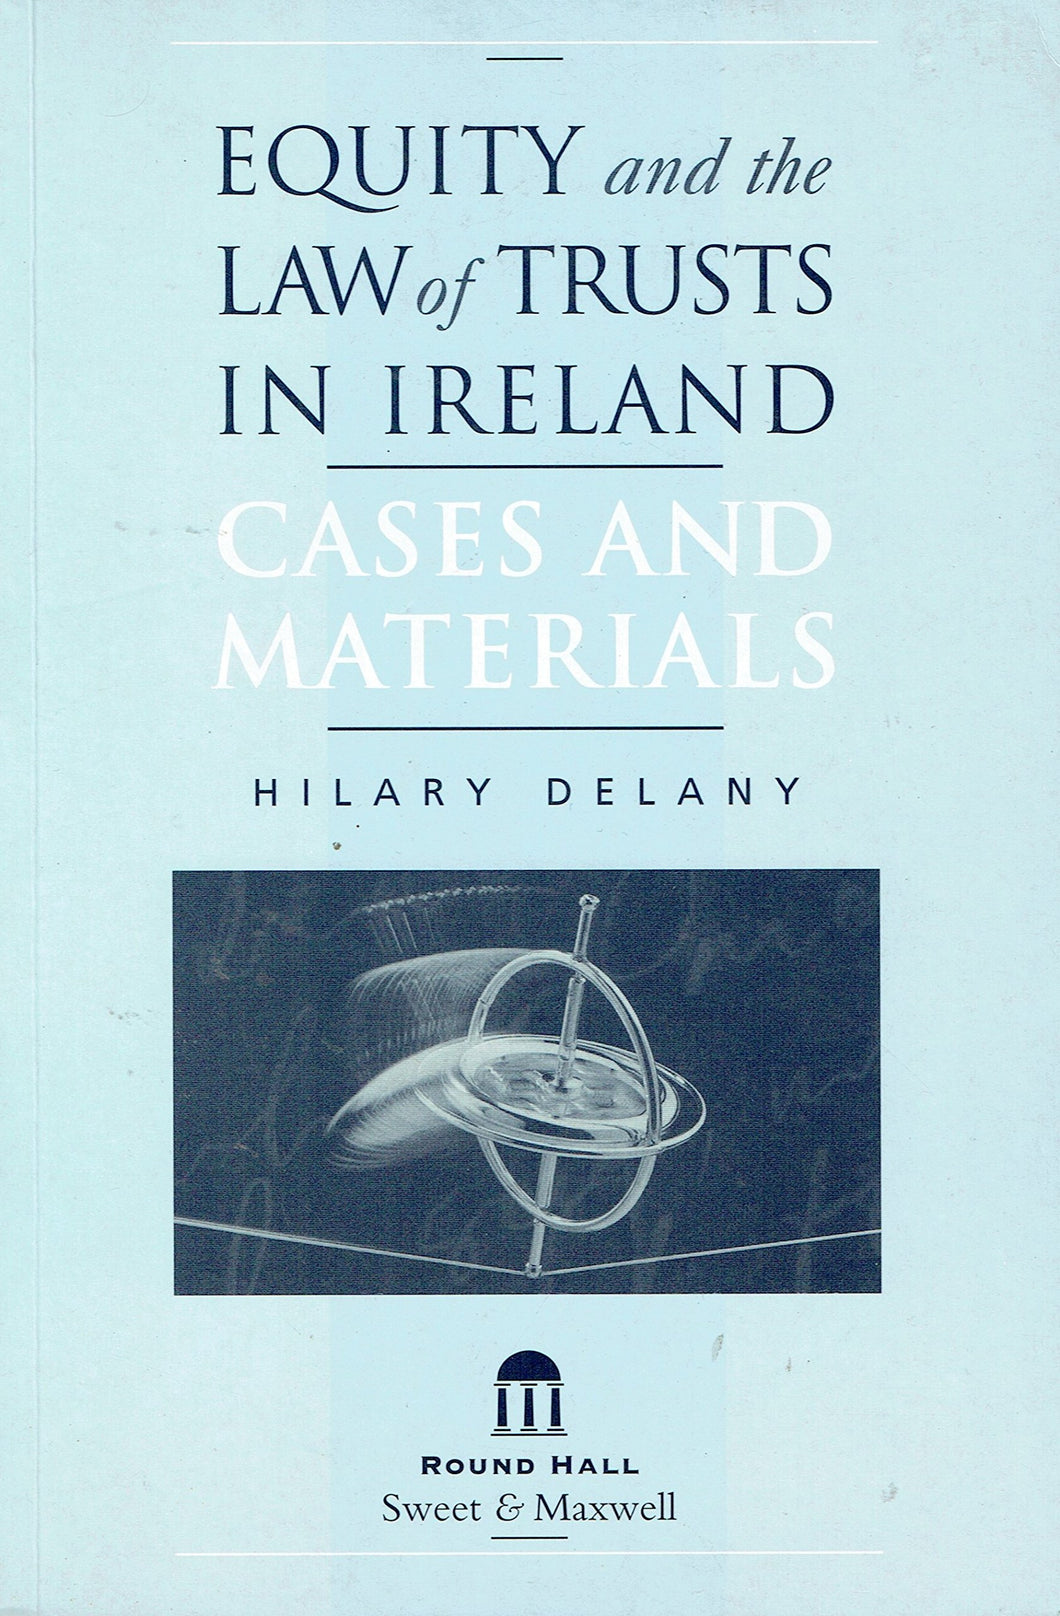 Equity and the Law of Trusts in Ireland - Cases and Materials